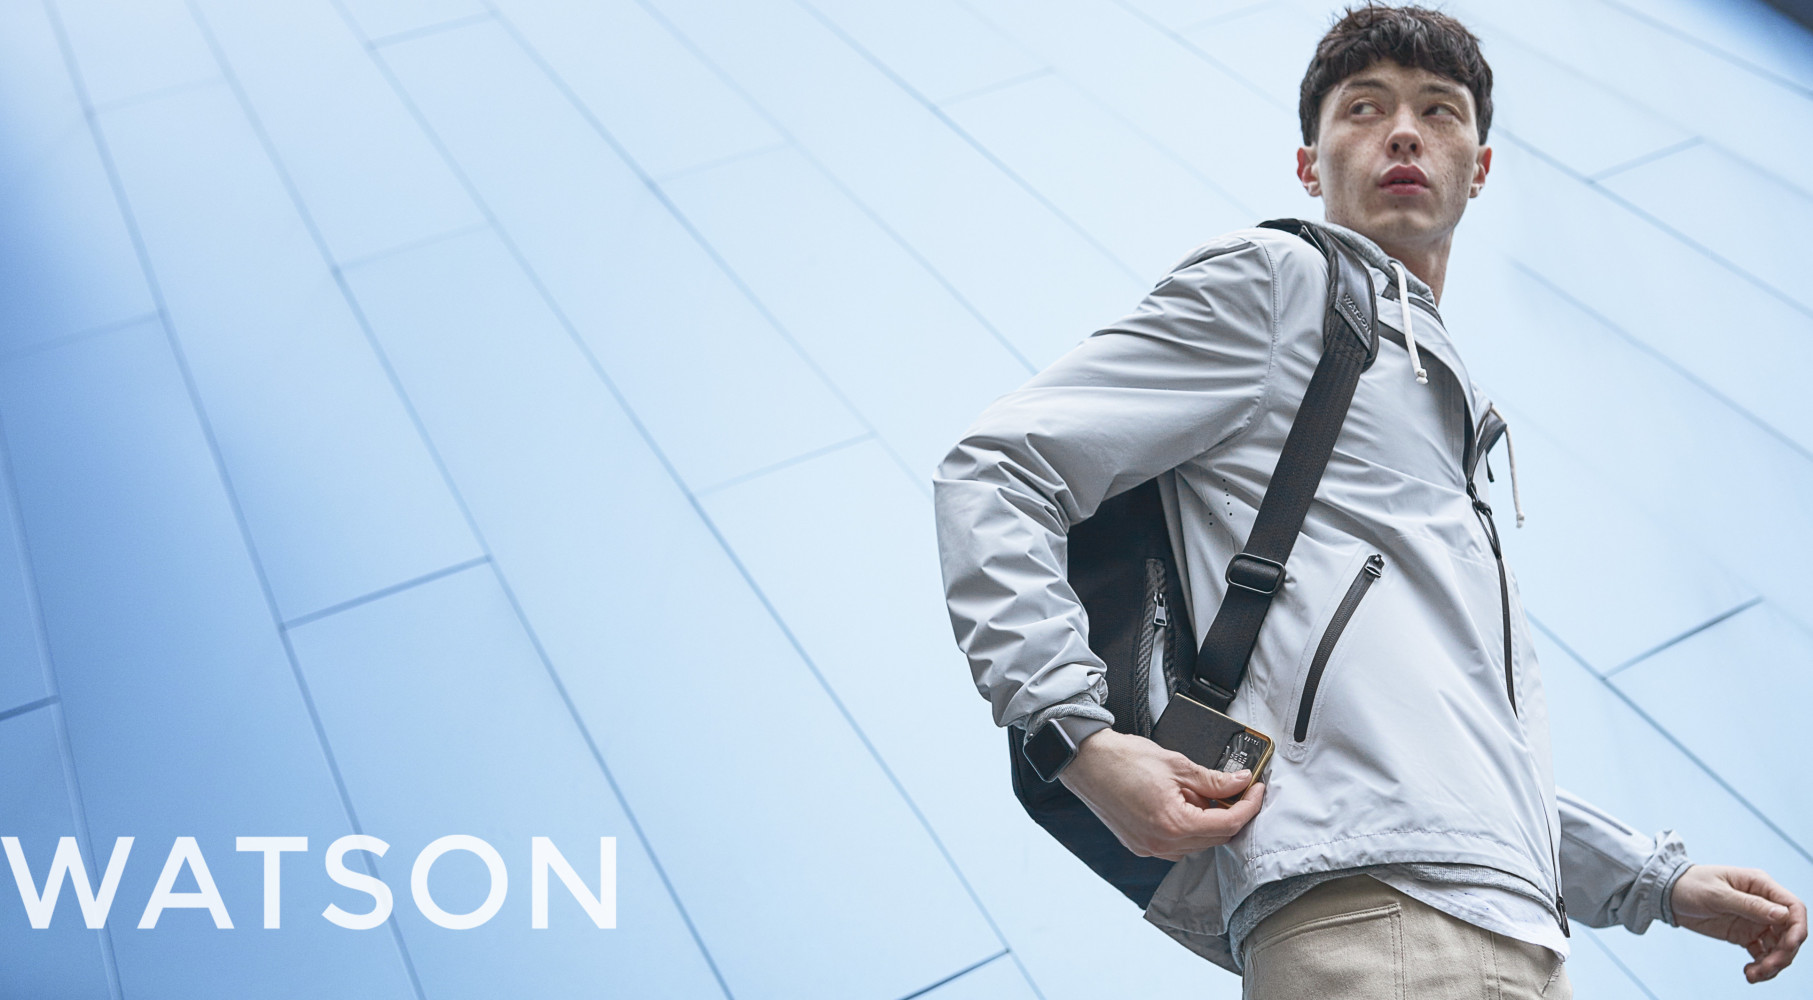 SPOTTED: EMILE FOR WATSON BACKPACKS